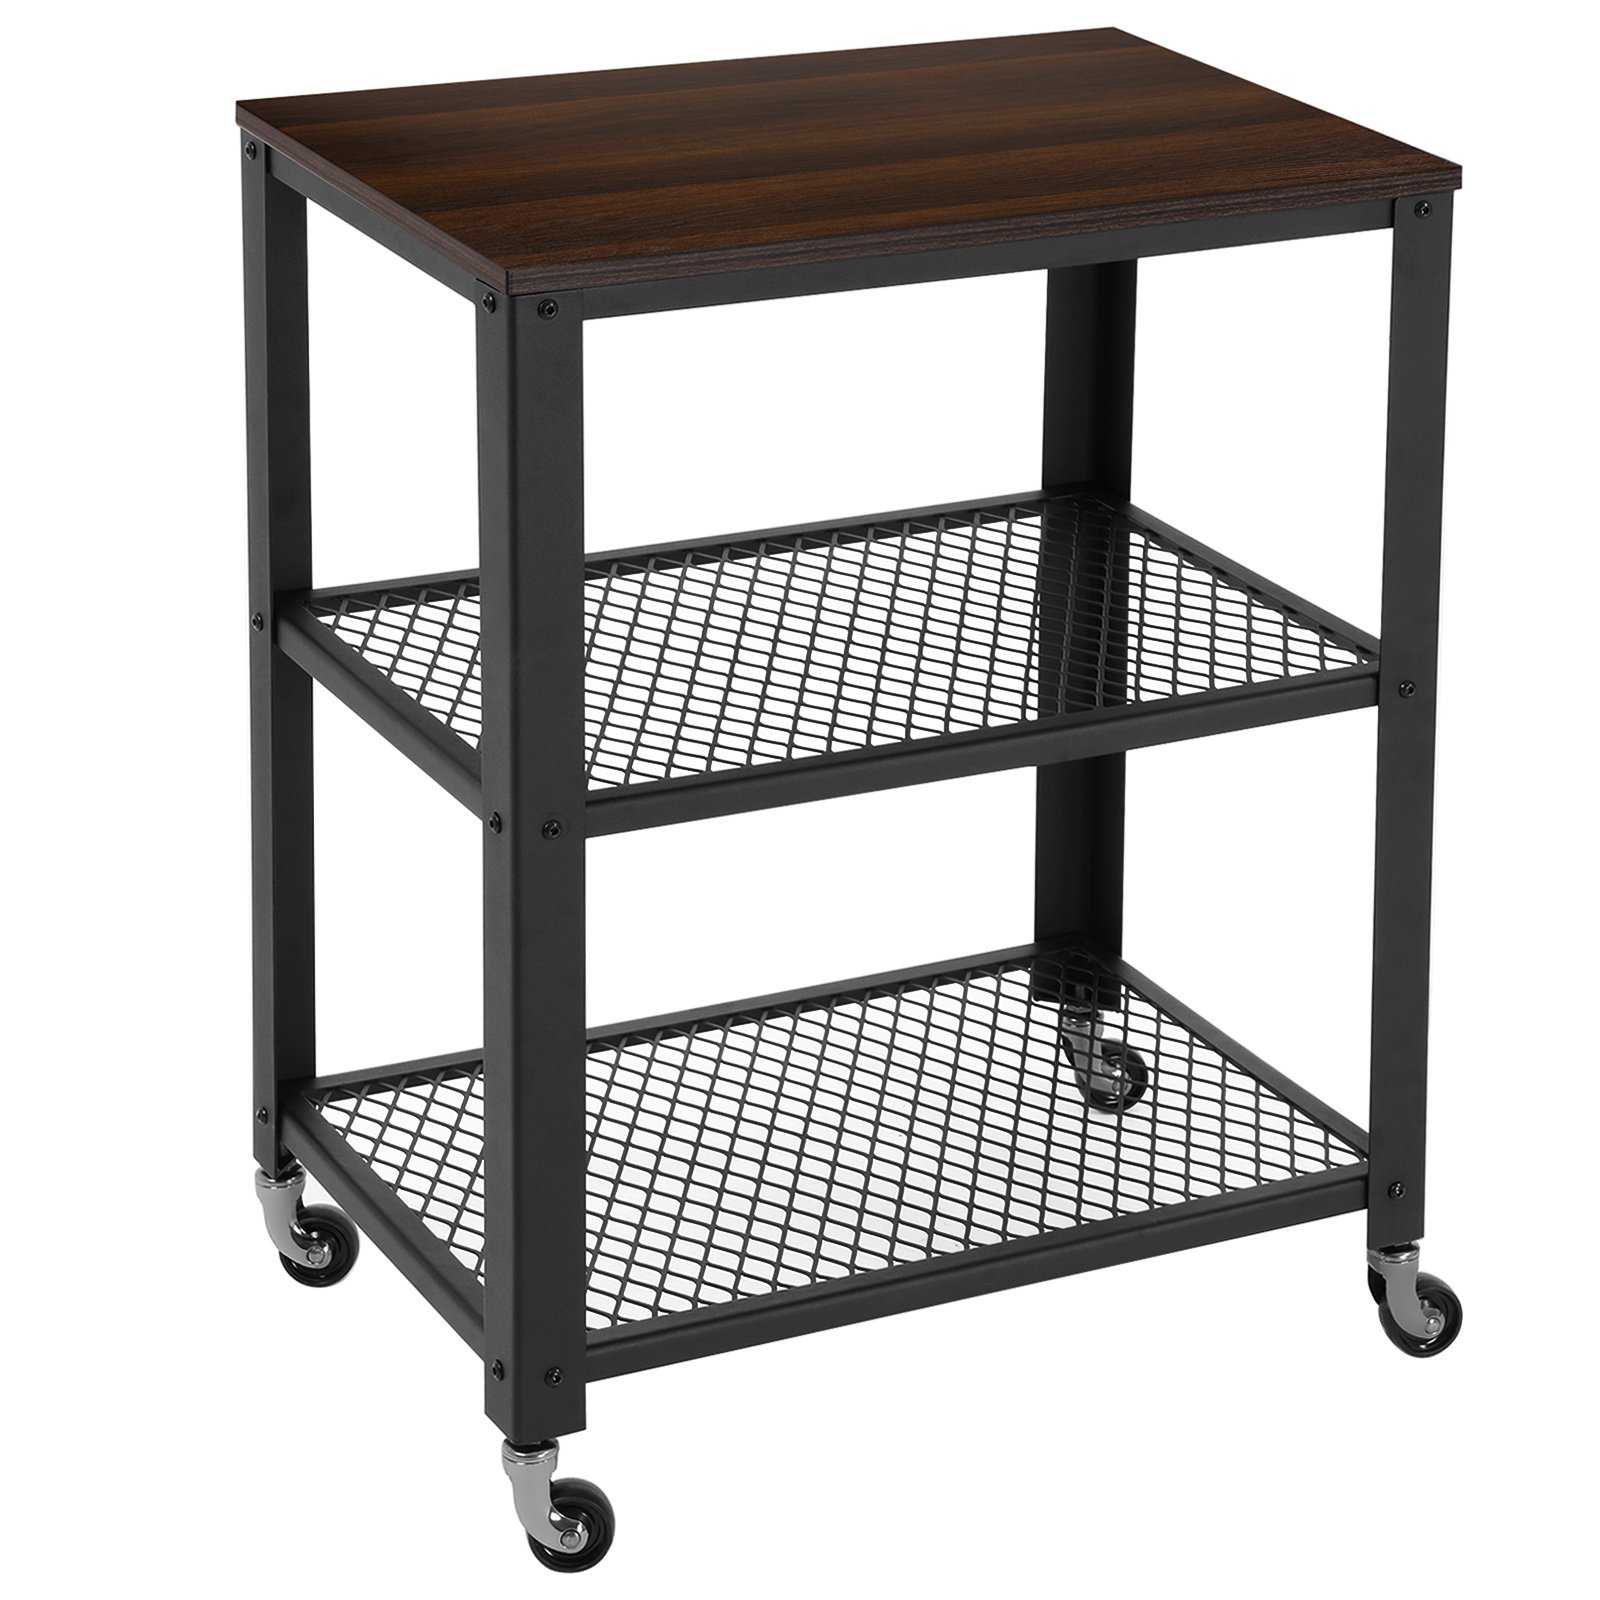 SONGMICS Rustic Kitchen Trolley Cart Rolling Utility Storage Cart with 3-Tier Shelves Walnut ULRC78K